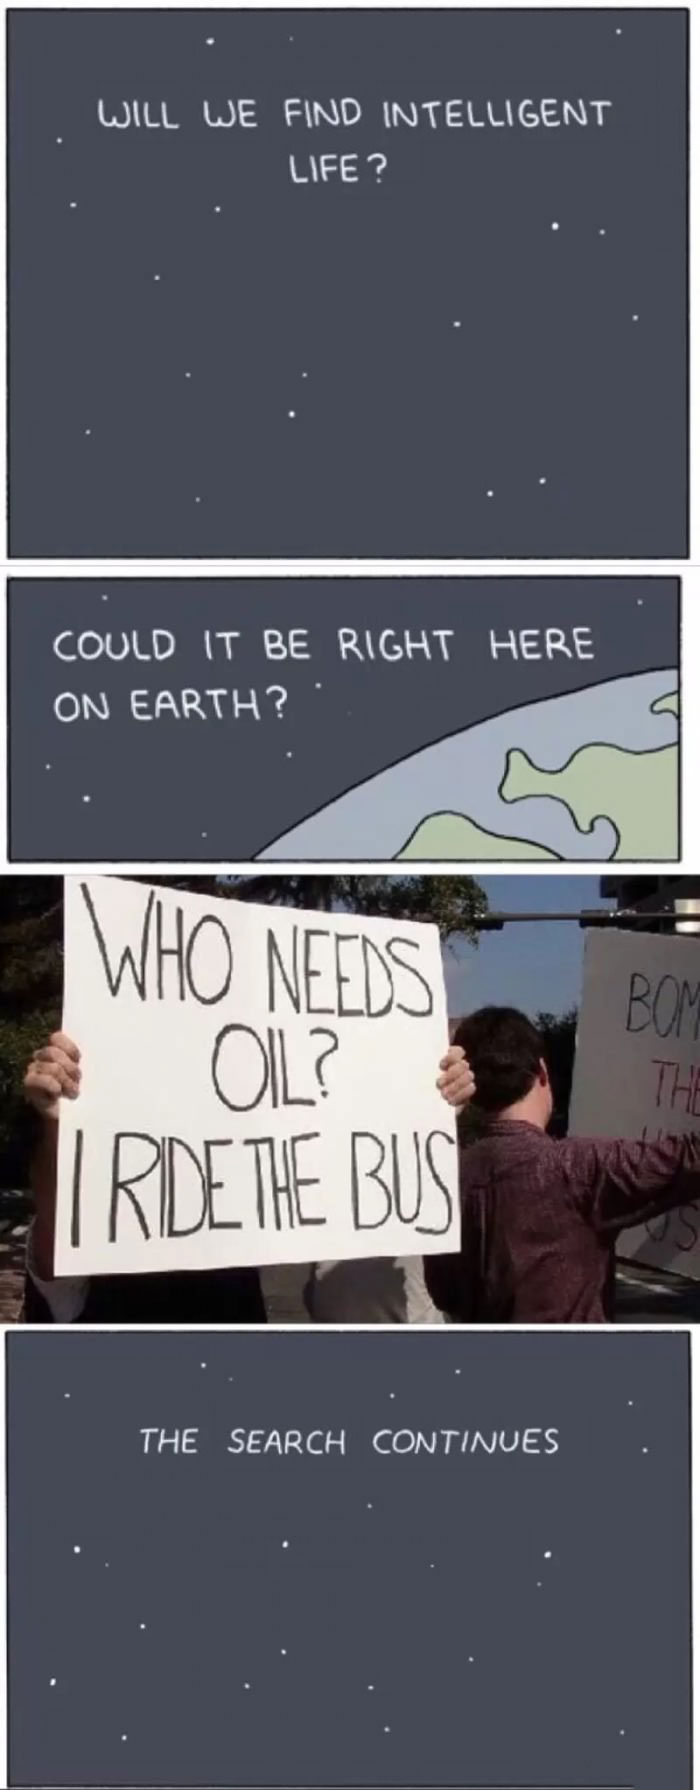 who needs oil i ride the bus, will we find intelligent life?, could it be right here on earth?, the search continues